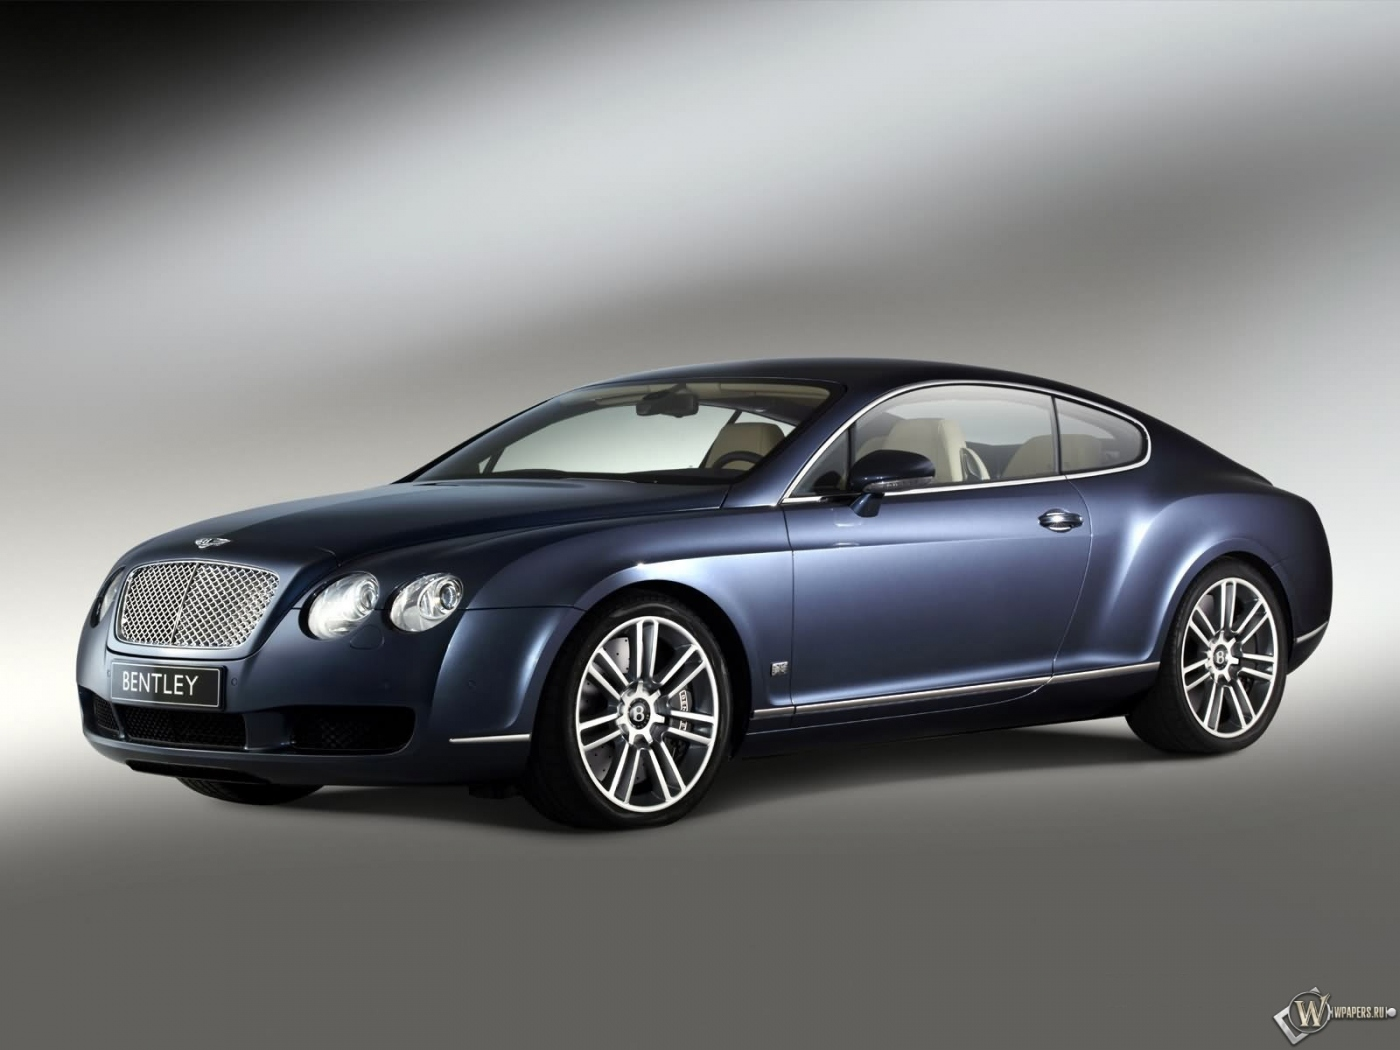 Bentley Continental GT 1400x1050